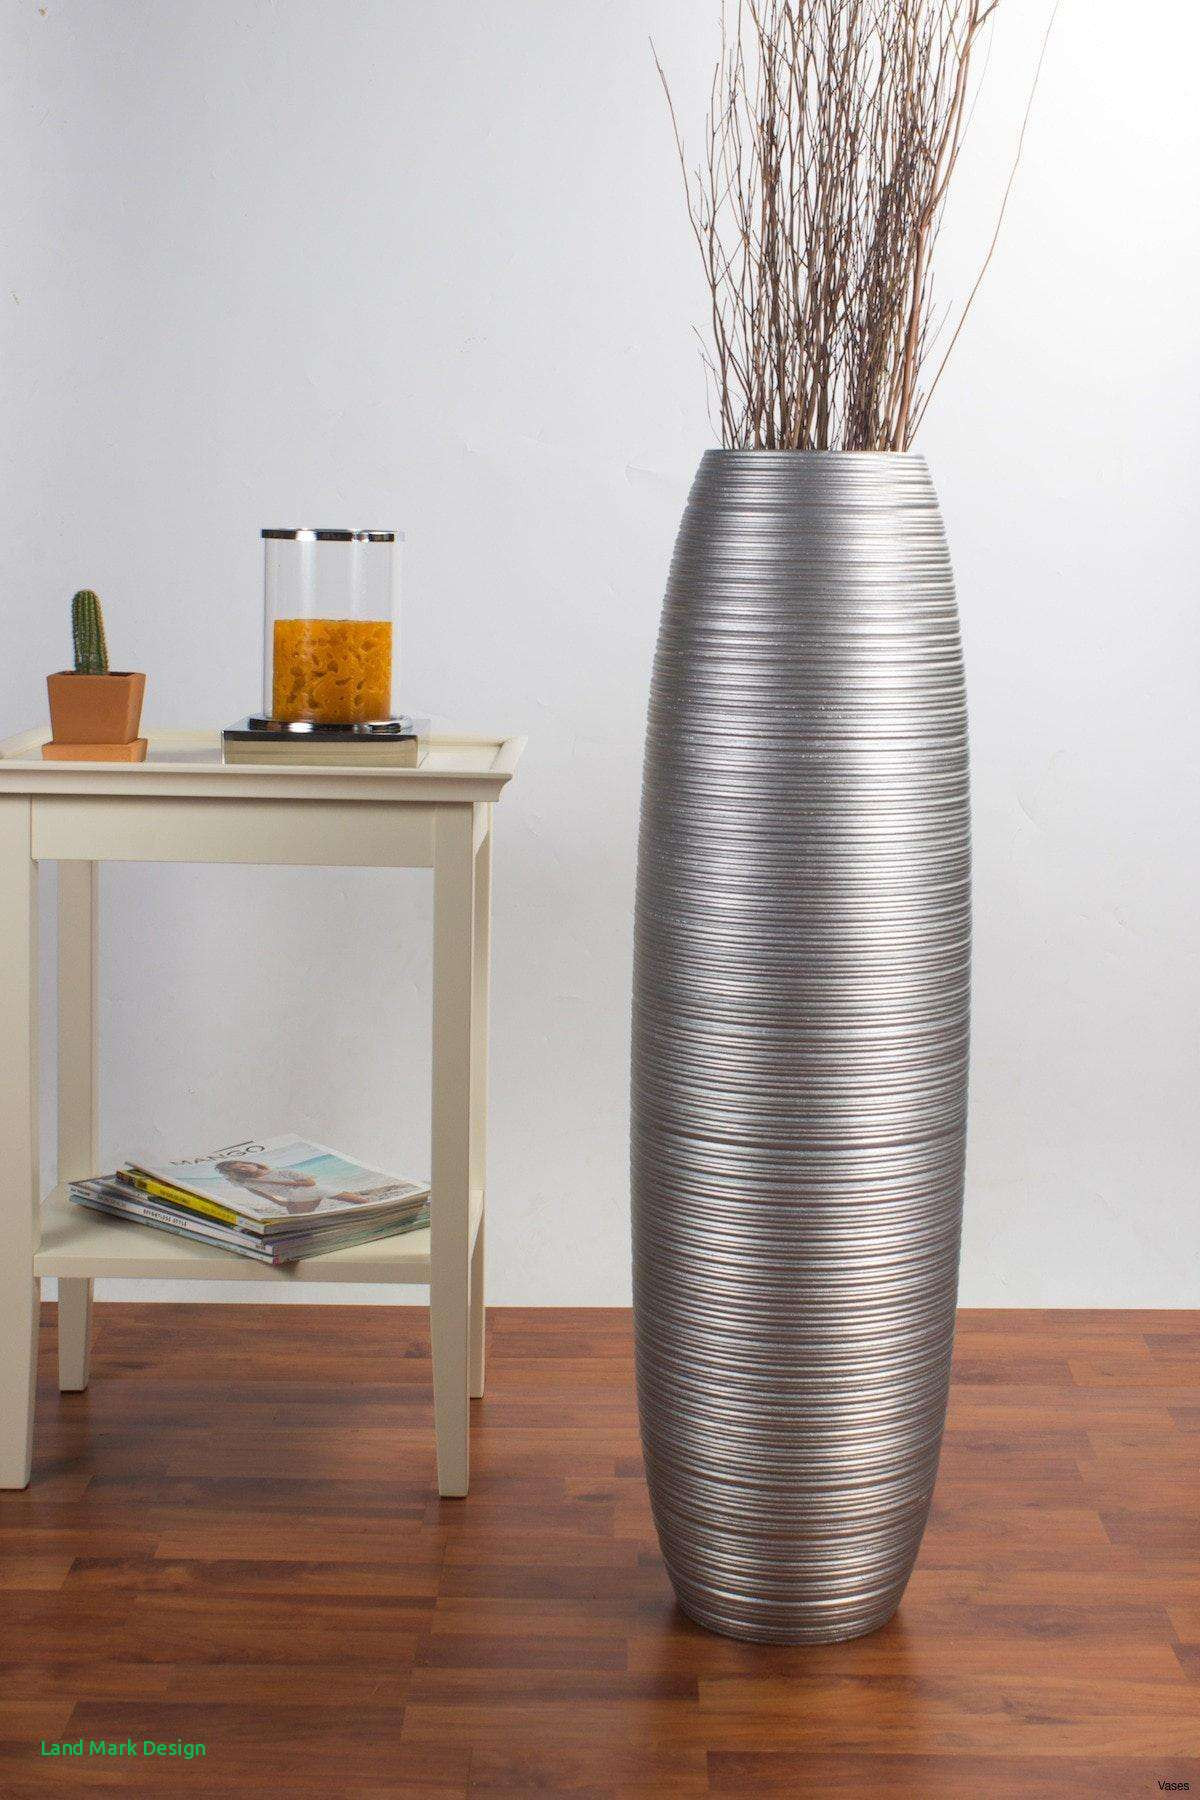 tall floor vases walmart of image of large metal floor vases vases artificial plants collection pertaining to large metal floor vases image silver floor vase design of image of large metal floor vases